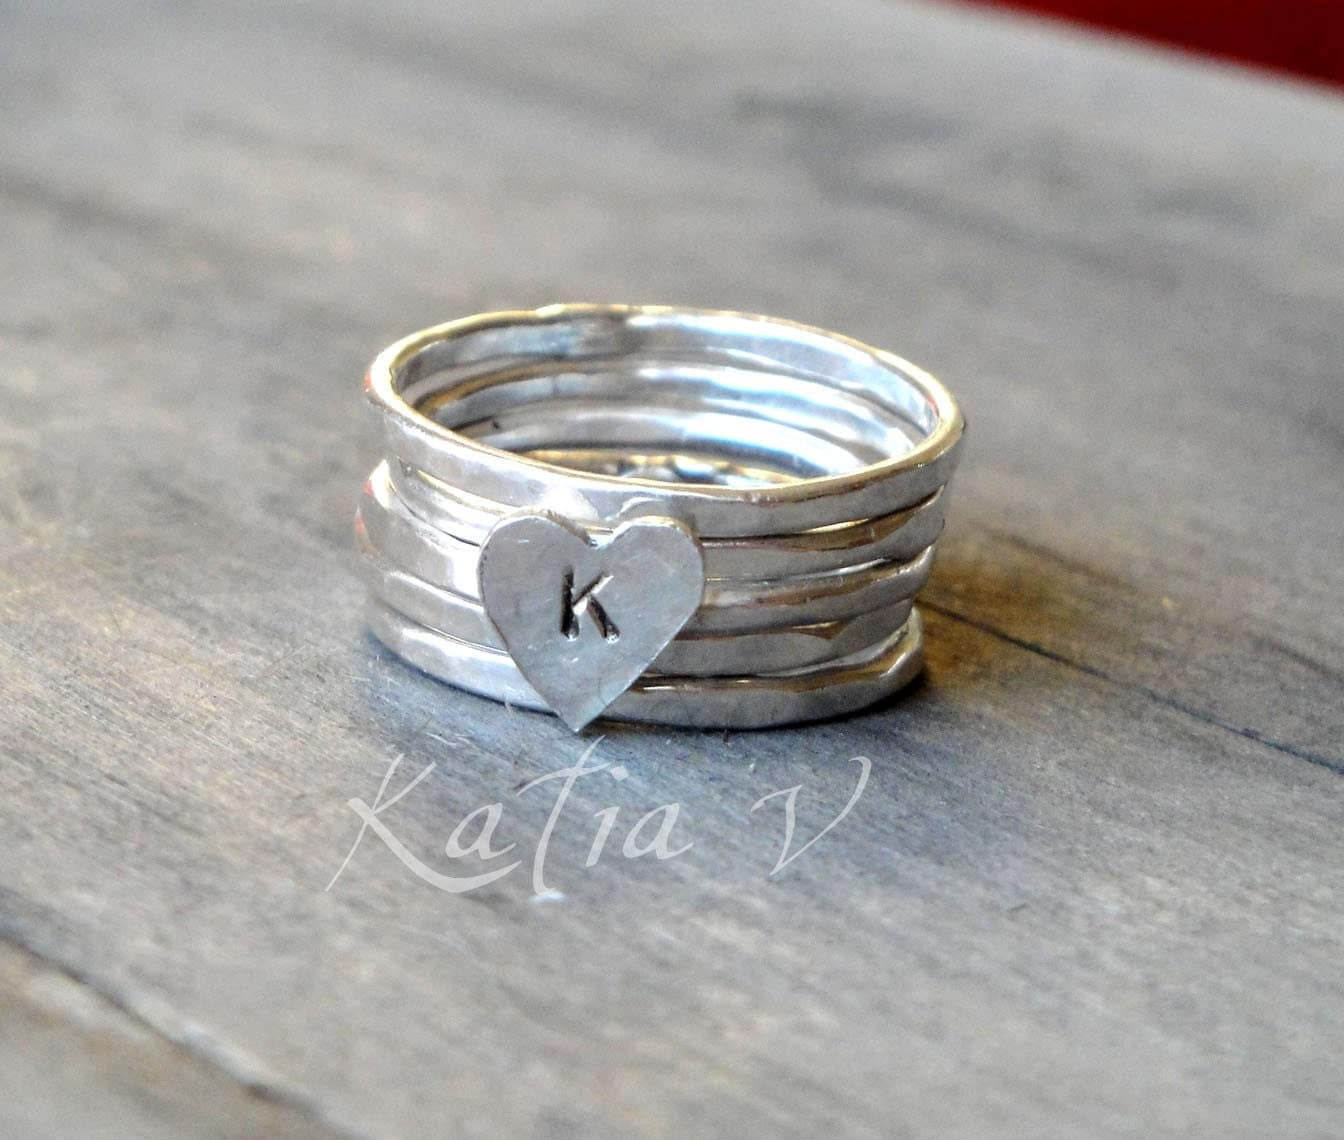 personalized ring handmade sterling silver by katerinaki1977